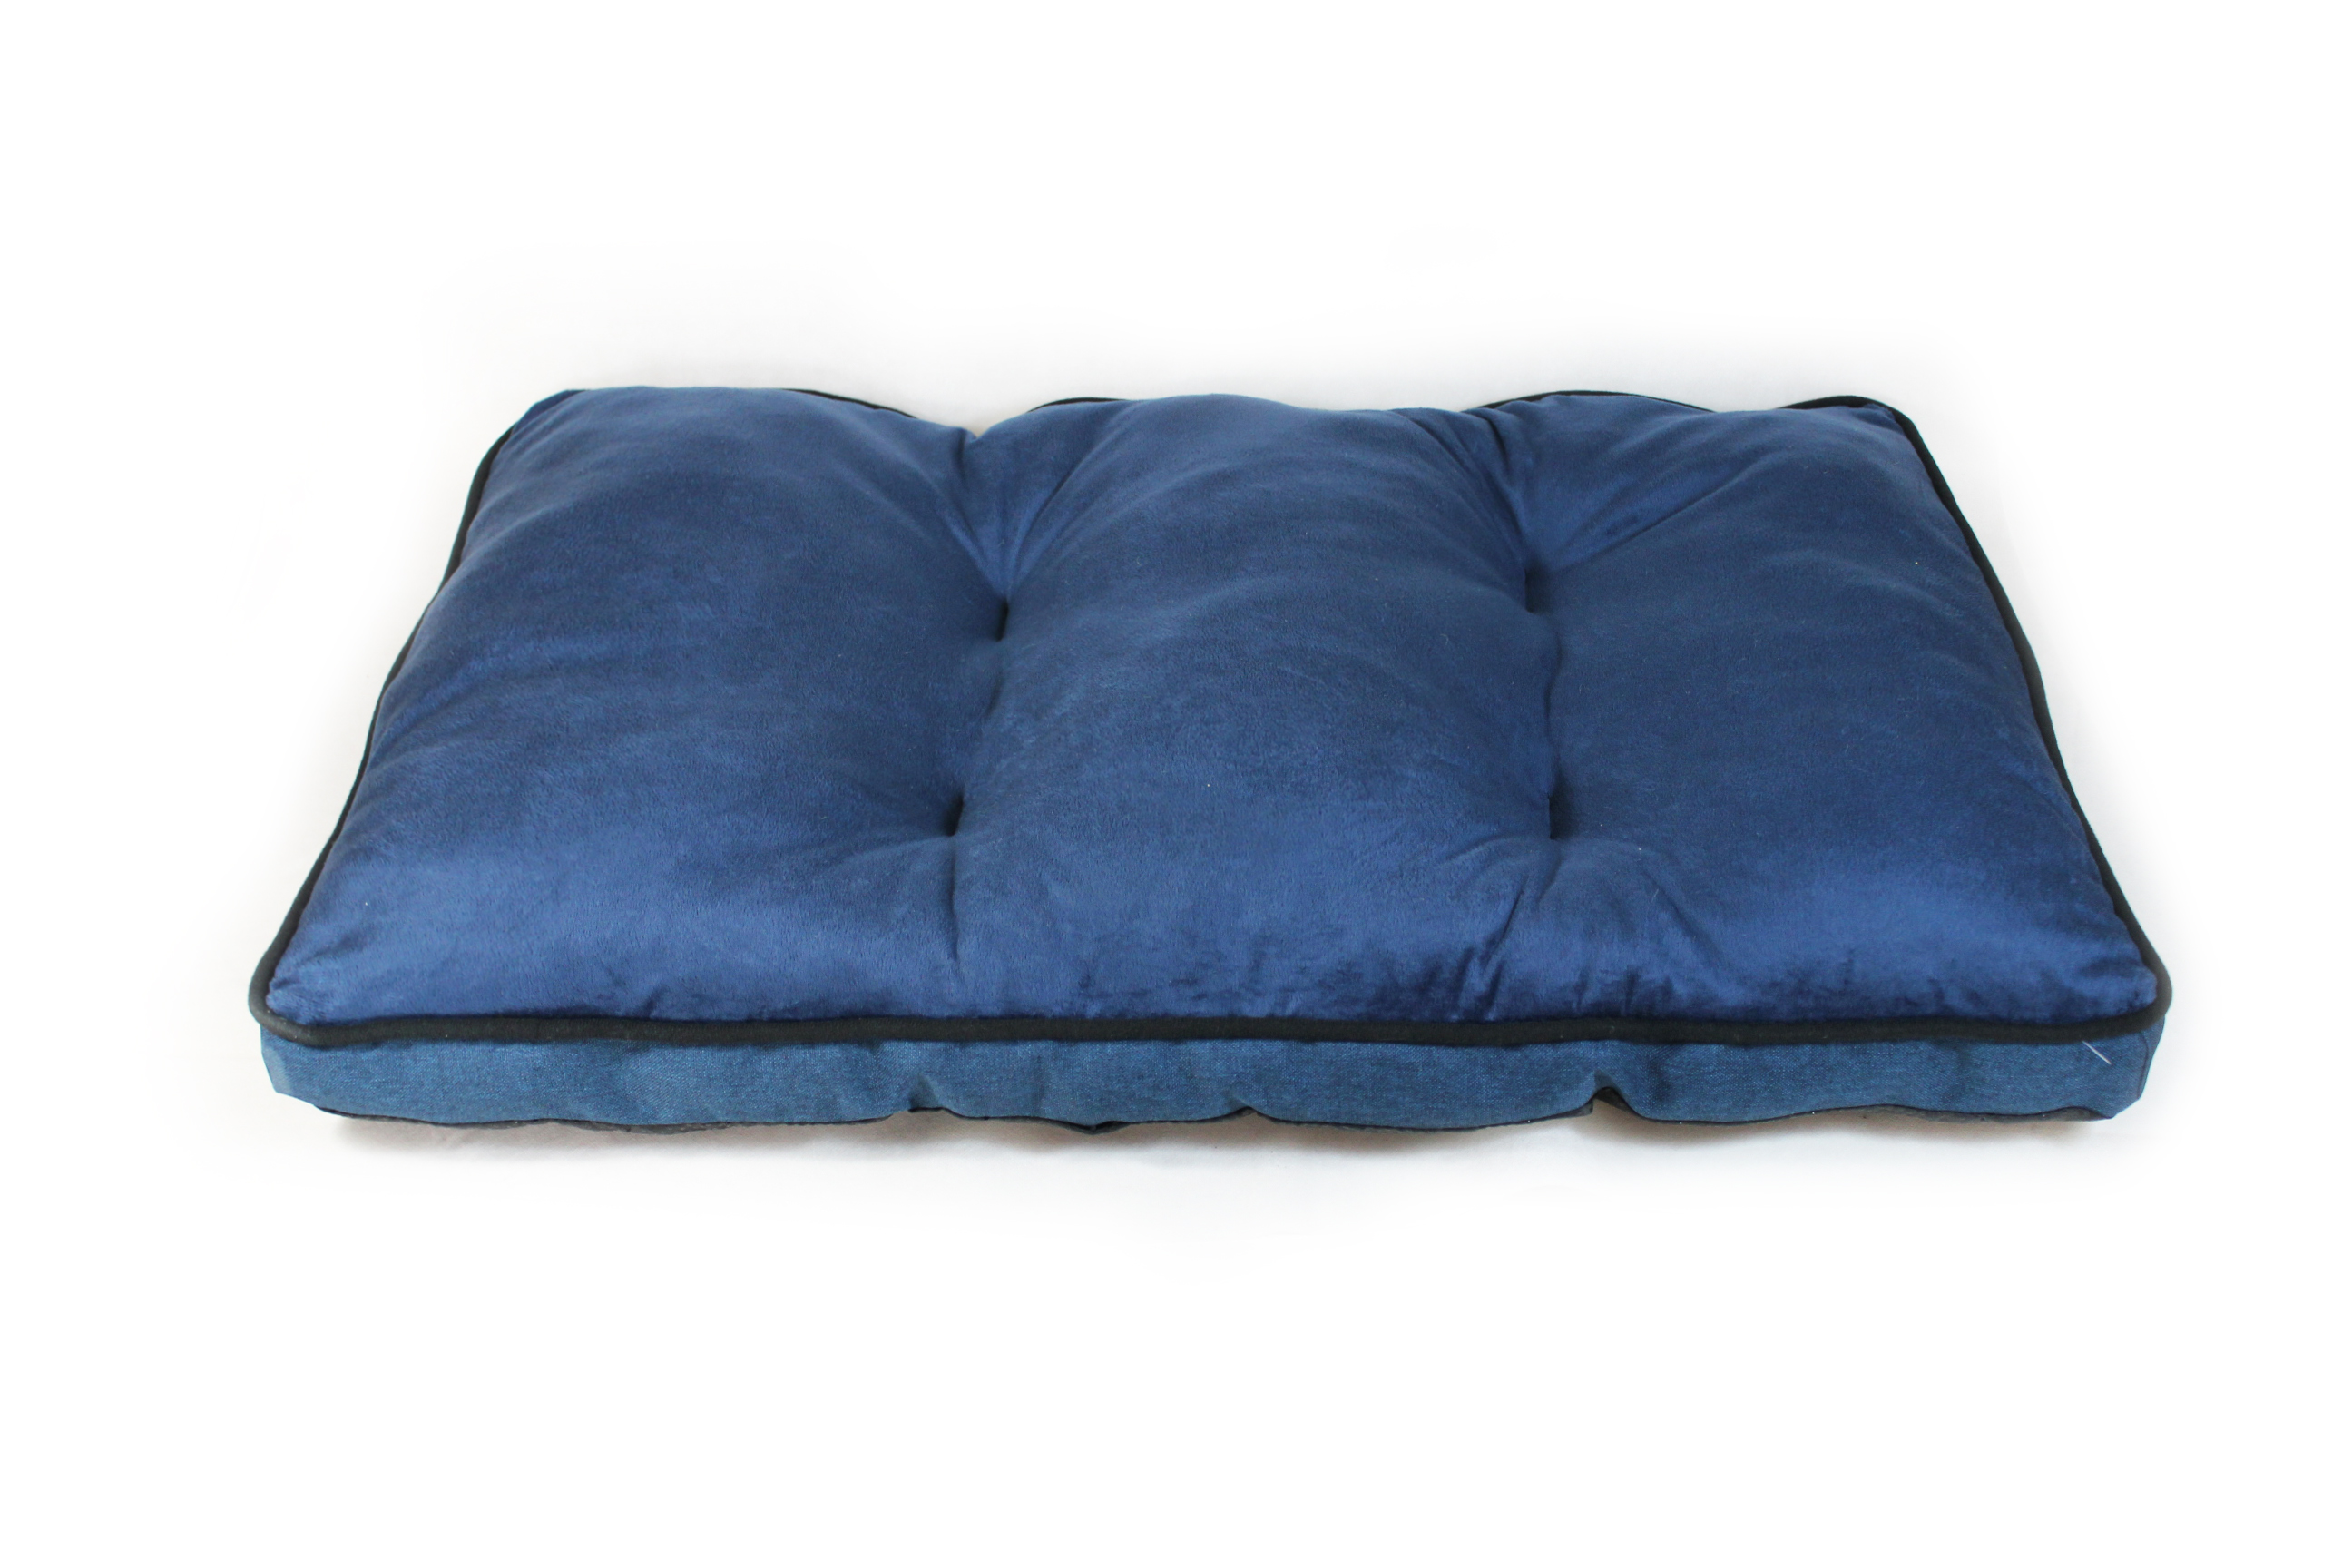 SHC DOG CUSHION 78X53X7 BLUE